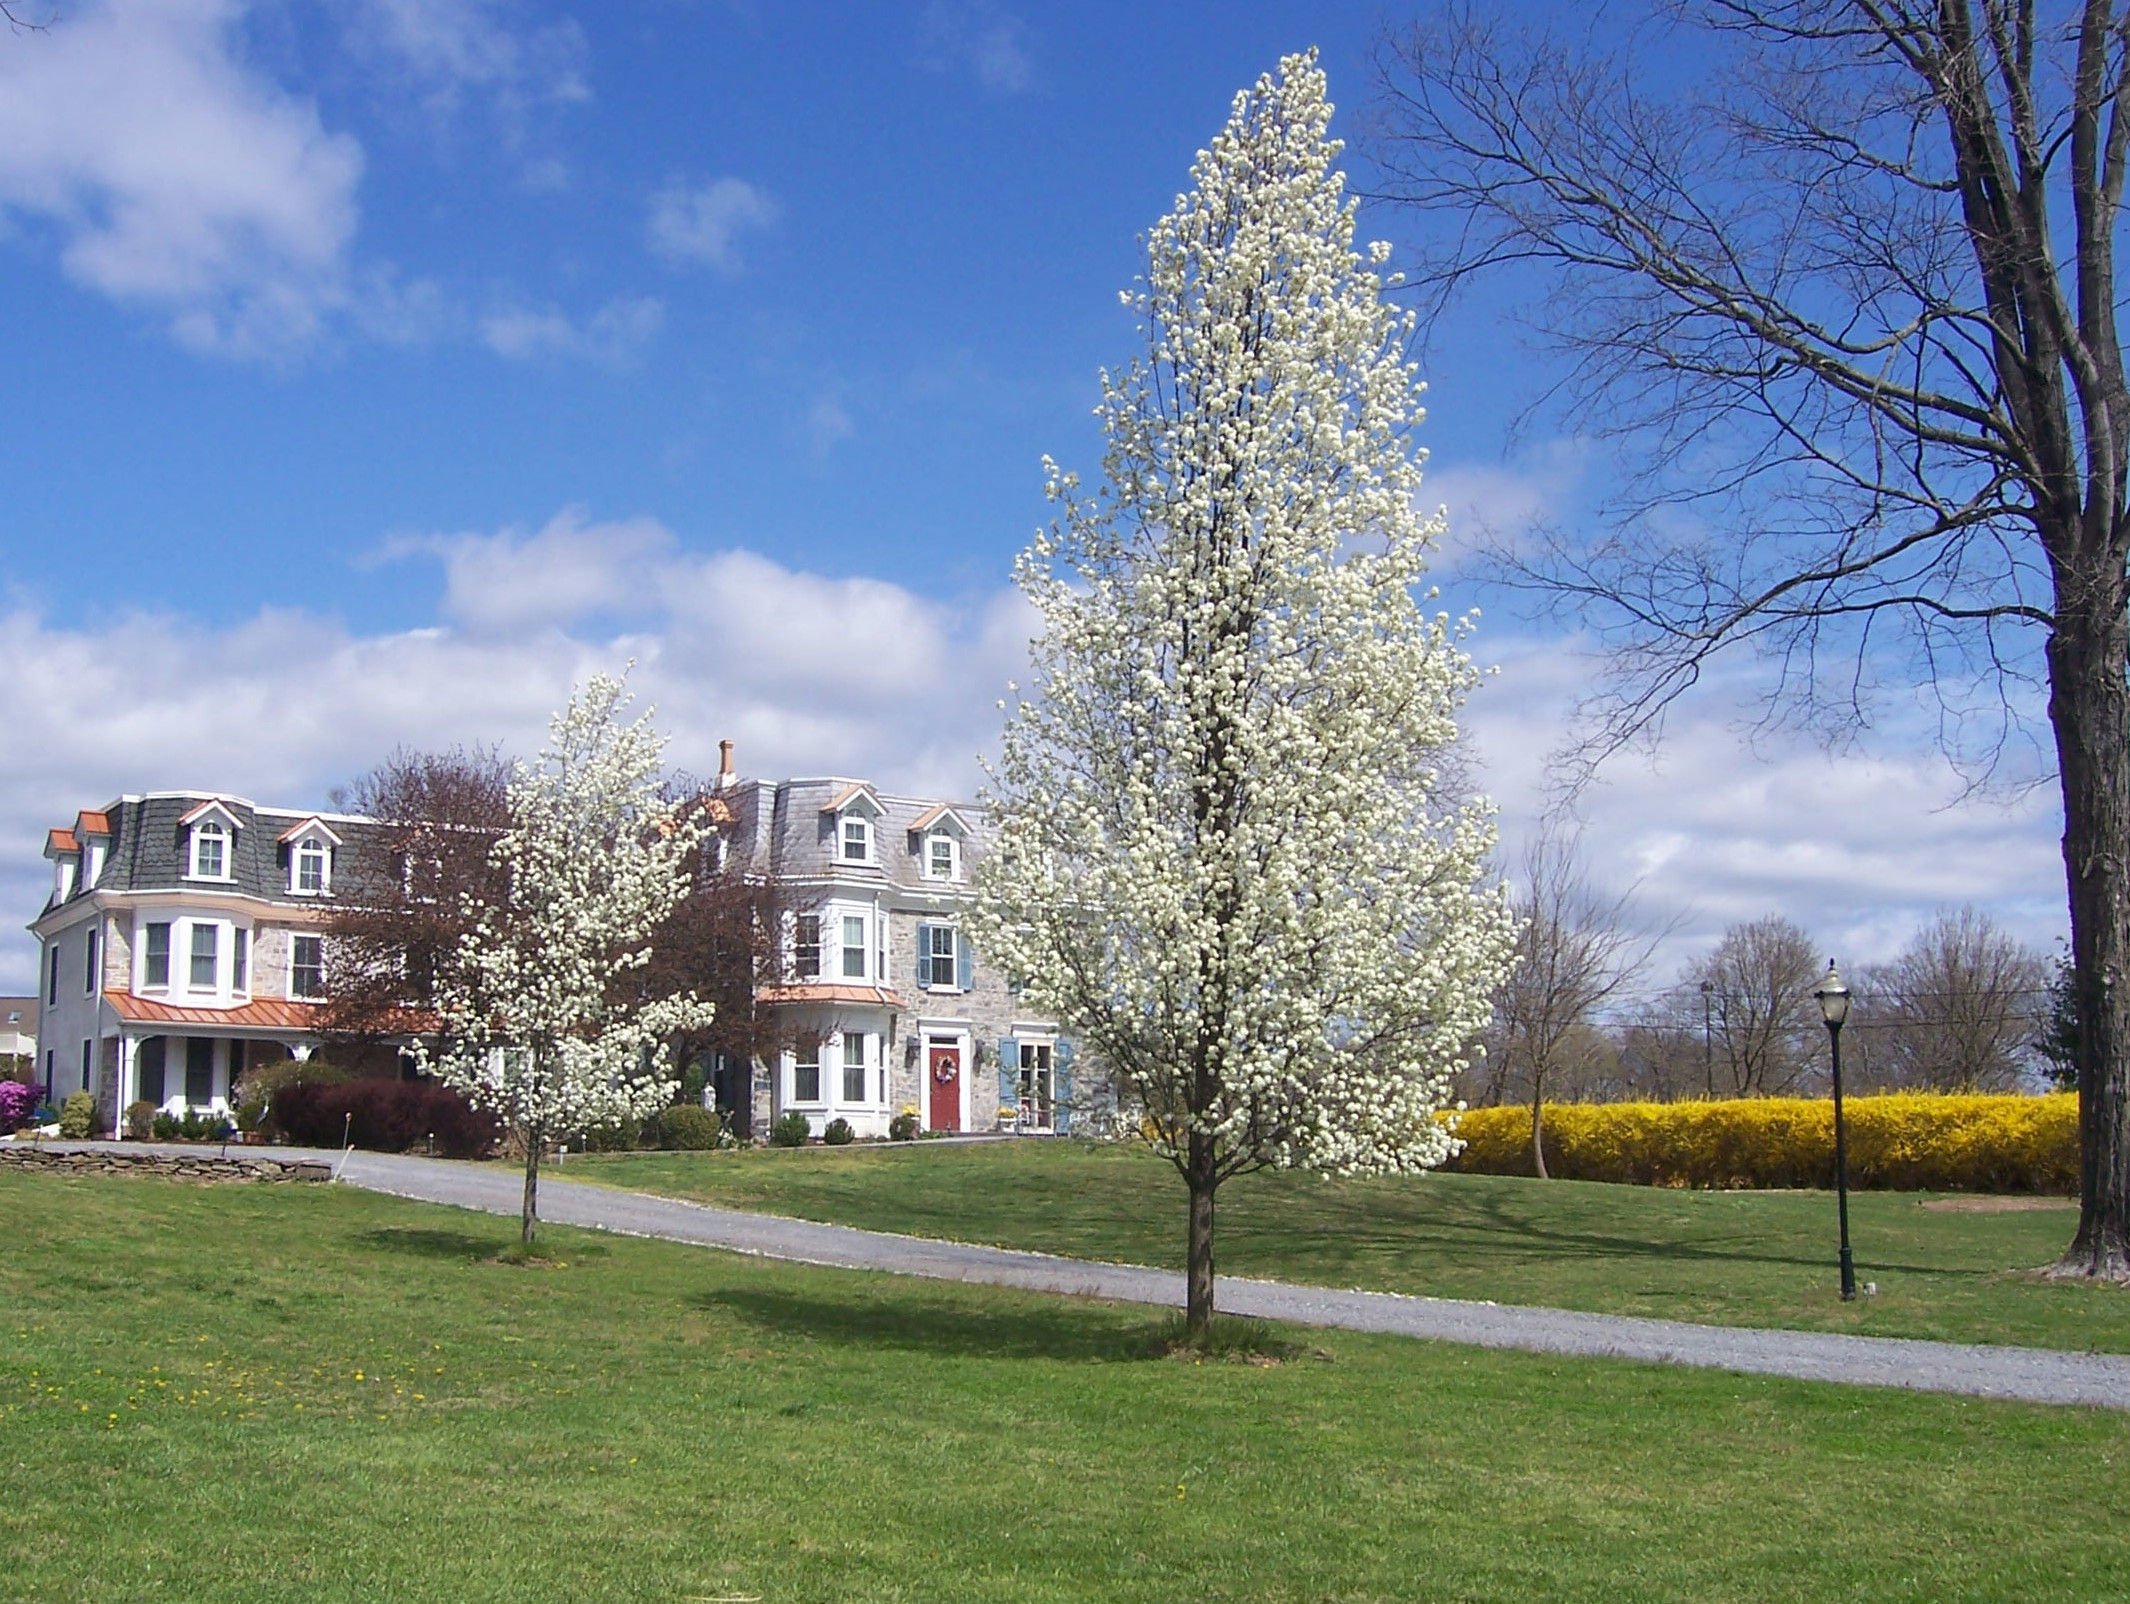 blue skies over historic manor home with large lawn and trees blooming white flowers